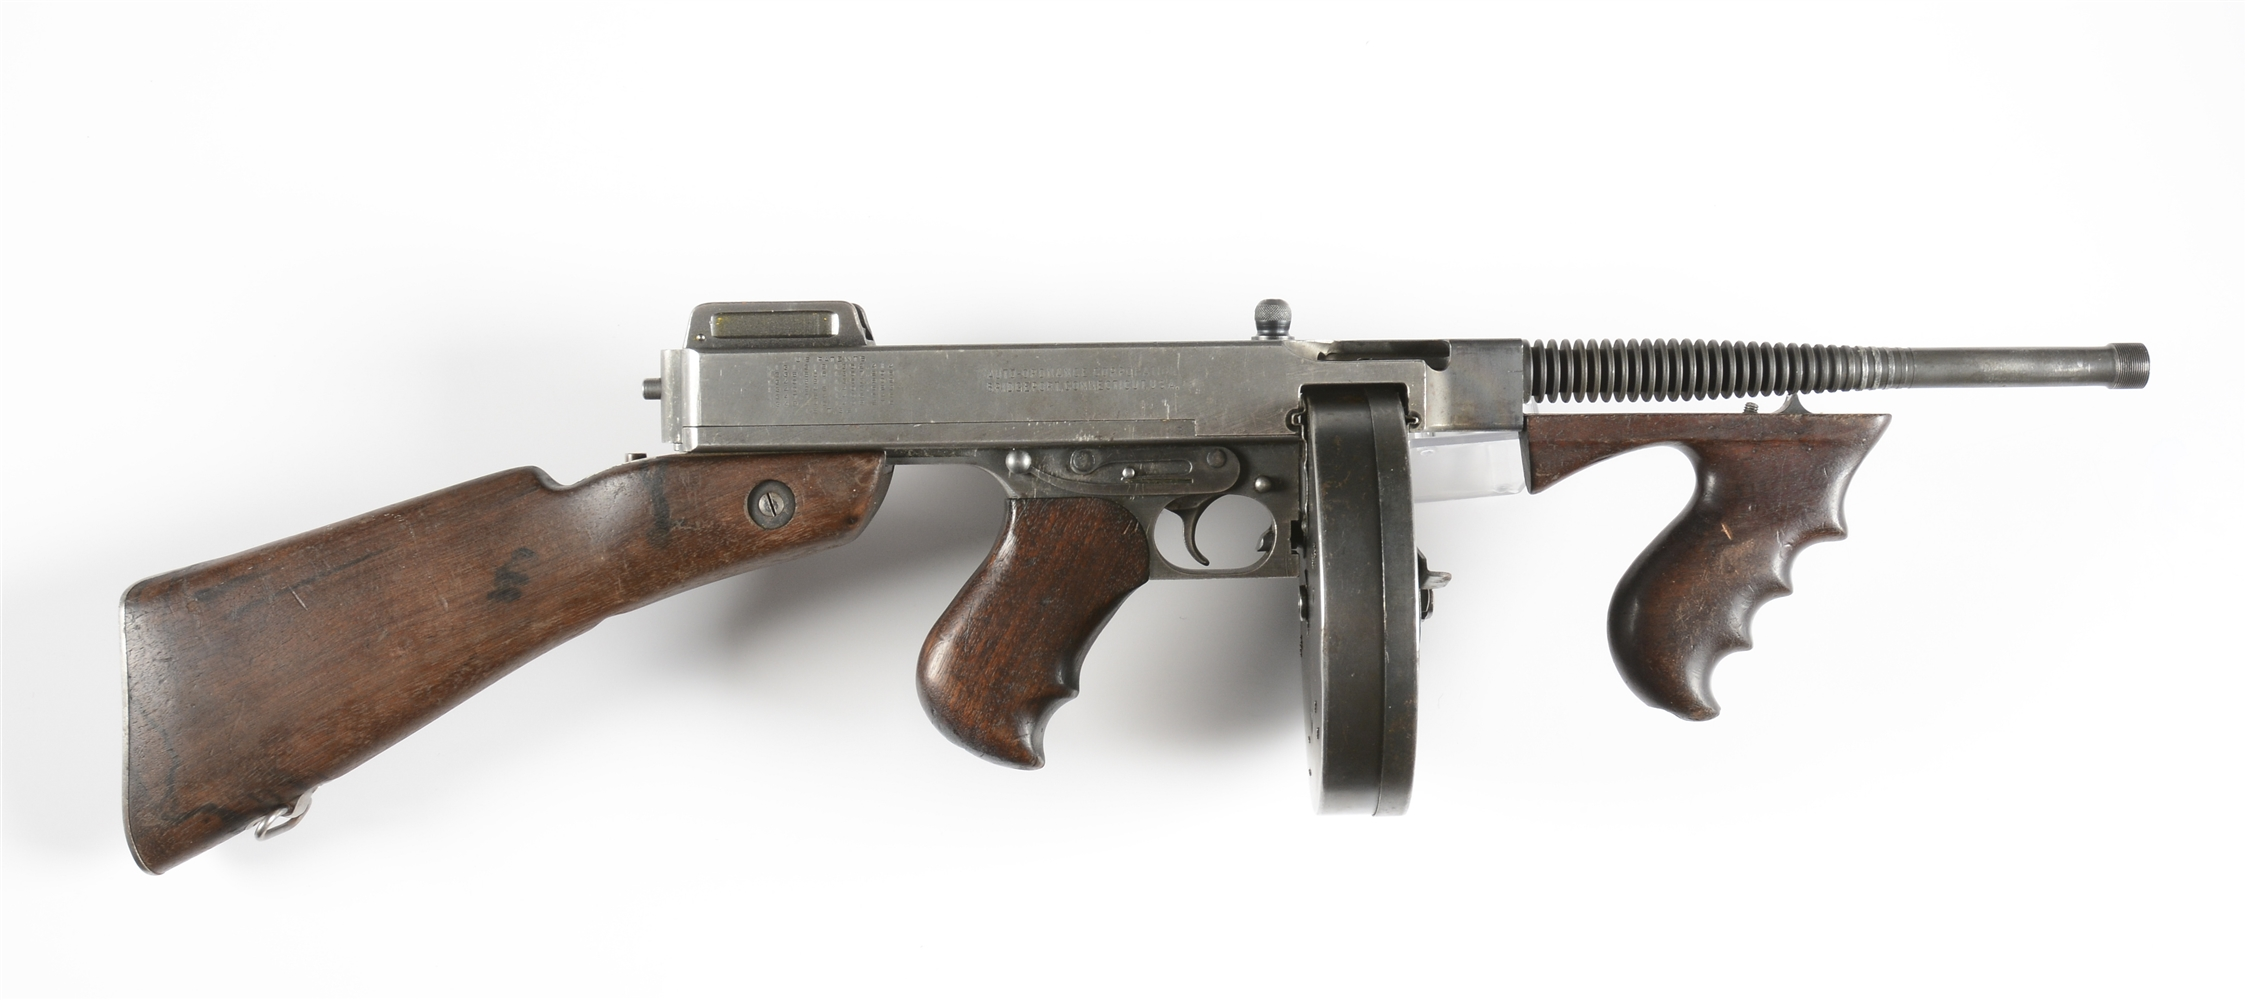 (N) SAVAGE MANUFACTURED AUTO ORDNANCE THOMPSON MODEL 1928A1 MACHINE GUN (CURIO & RELIC).